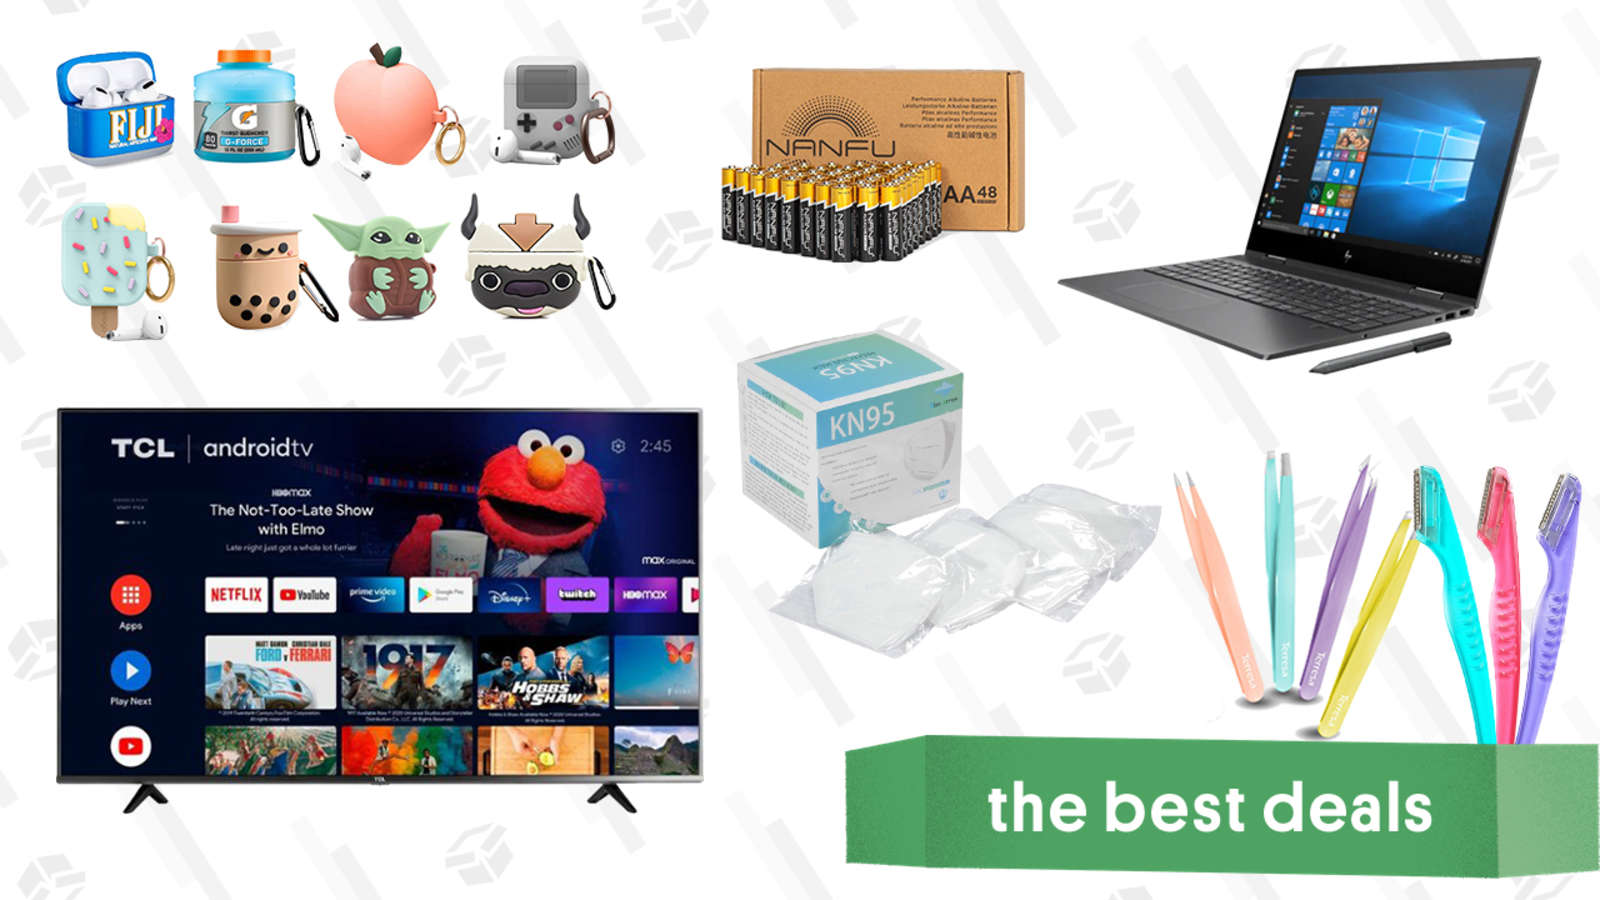 Saturday's Best Deals: HP Envy x360 Laptops, TCL 50-inch 4K Smart TV, AirPods Case Covers, 48-pack AA Batteries, KN95 Masks, and More